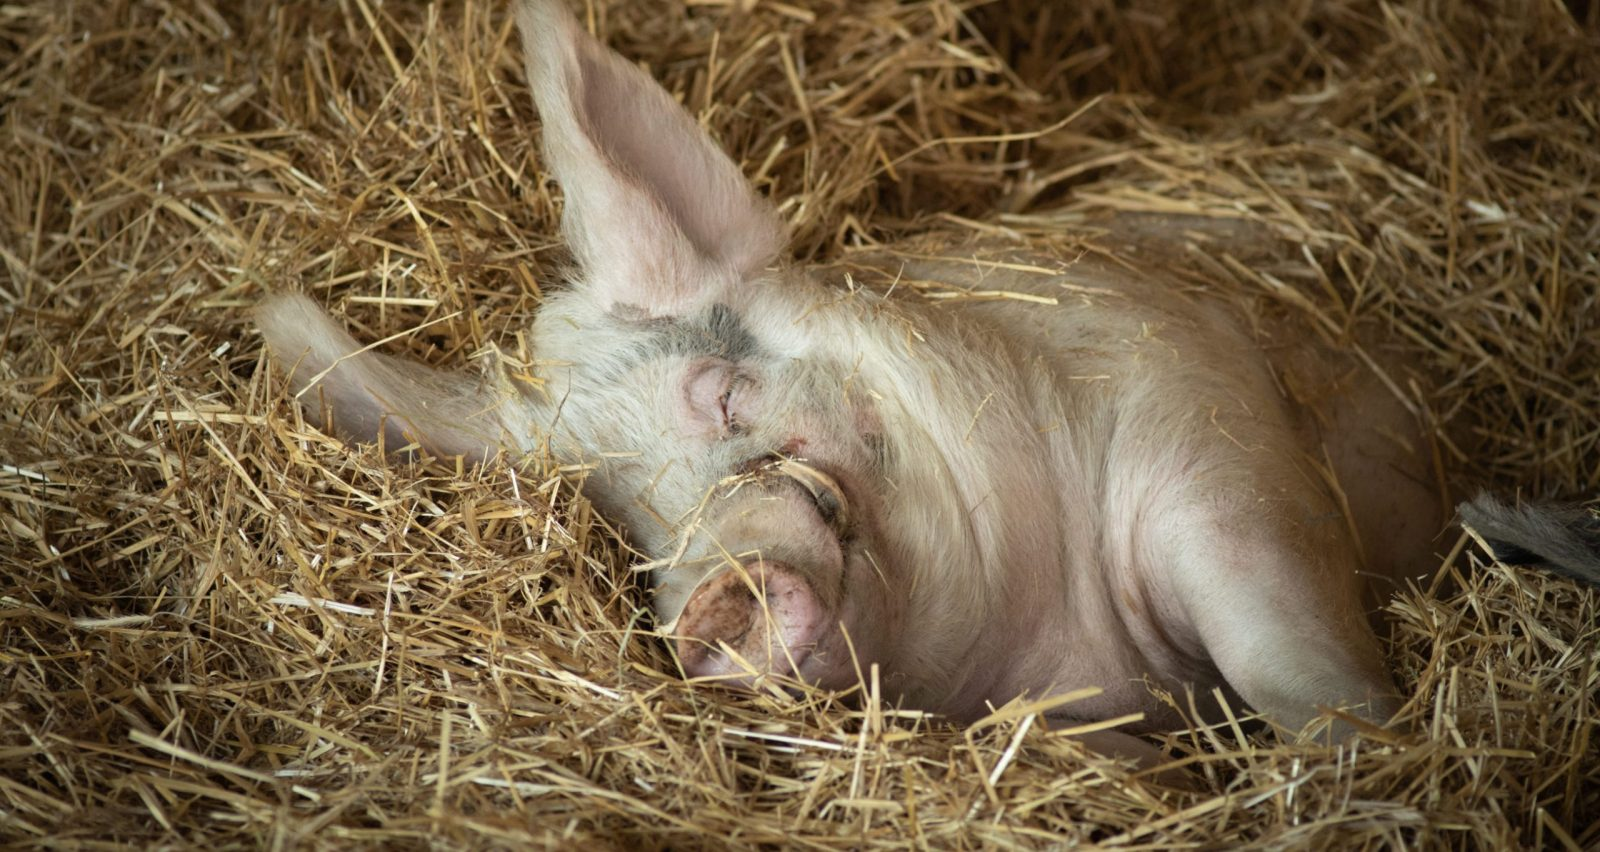 Andy pig in hay